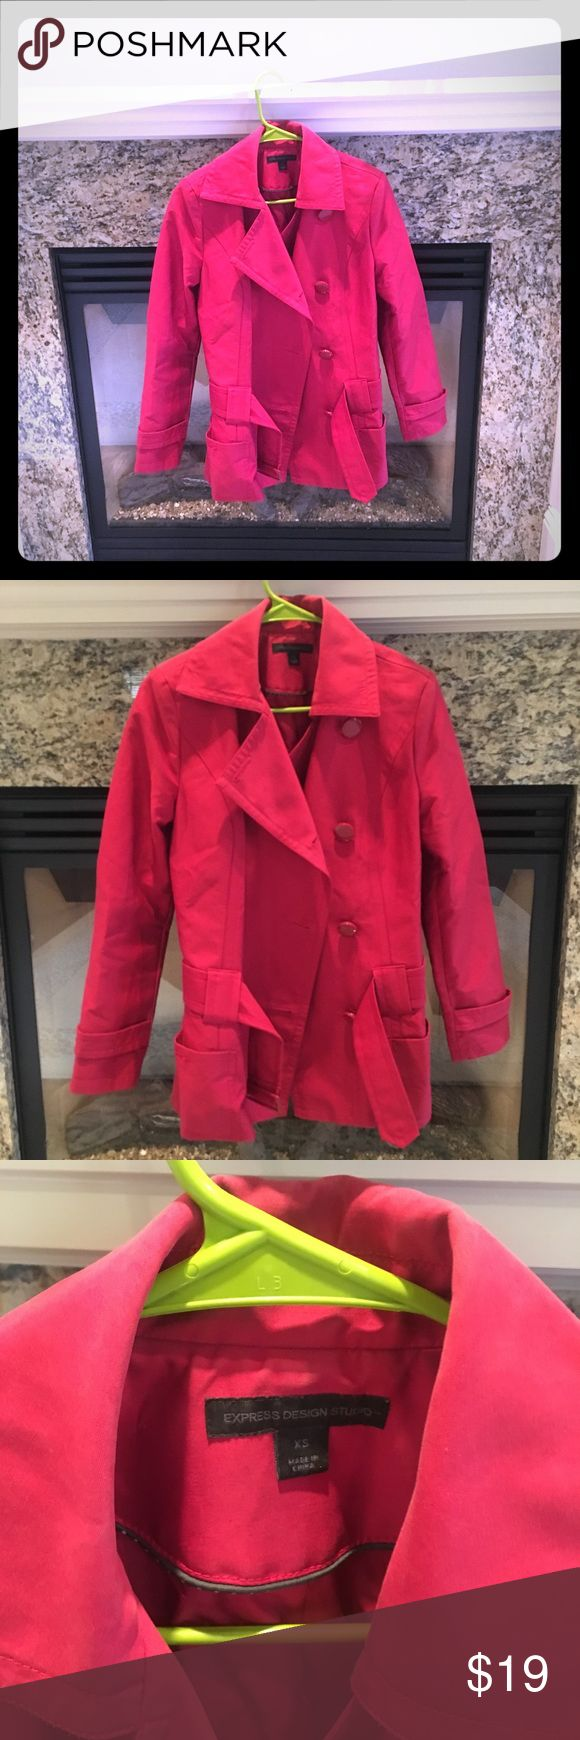 Peacoat trench ruby red/pink express jacket Stylish express jacket with belt. A ruby red combined with pink color. Very pretty. In good condition. Signs of wear on collar (make up marks) but can be removed  y a dry cleaner. Hits at the hips. All buttons intact. Lightweight but warm. Perfect for fall. Size extra small. Reasonable offers welcome. 😊 Express Jackets & Coats